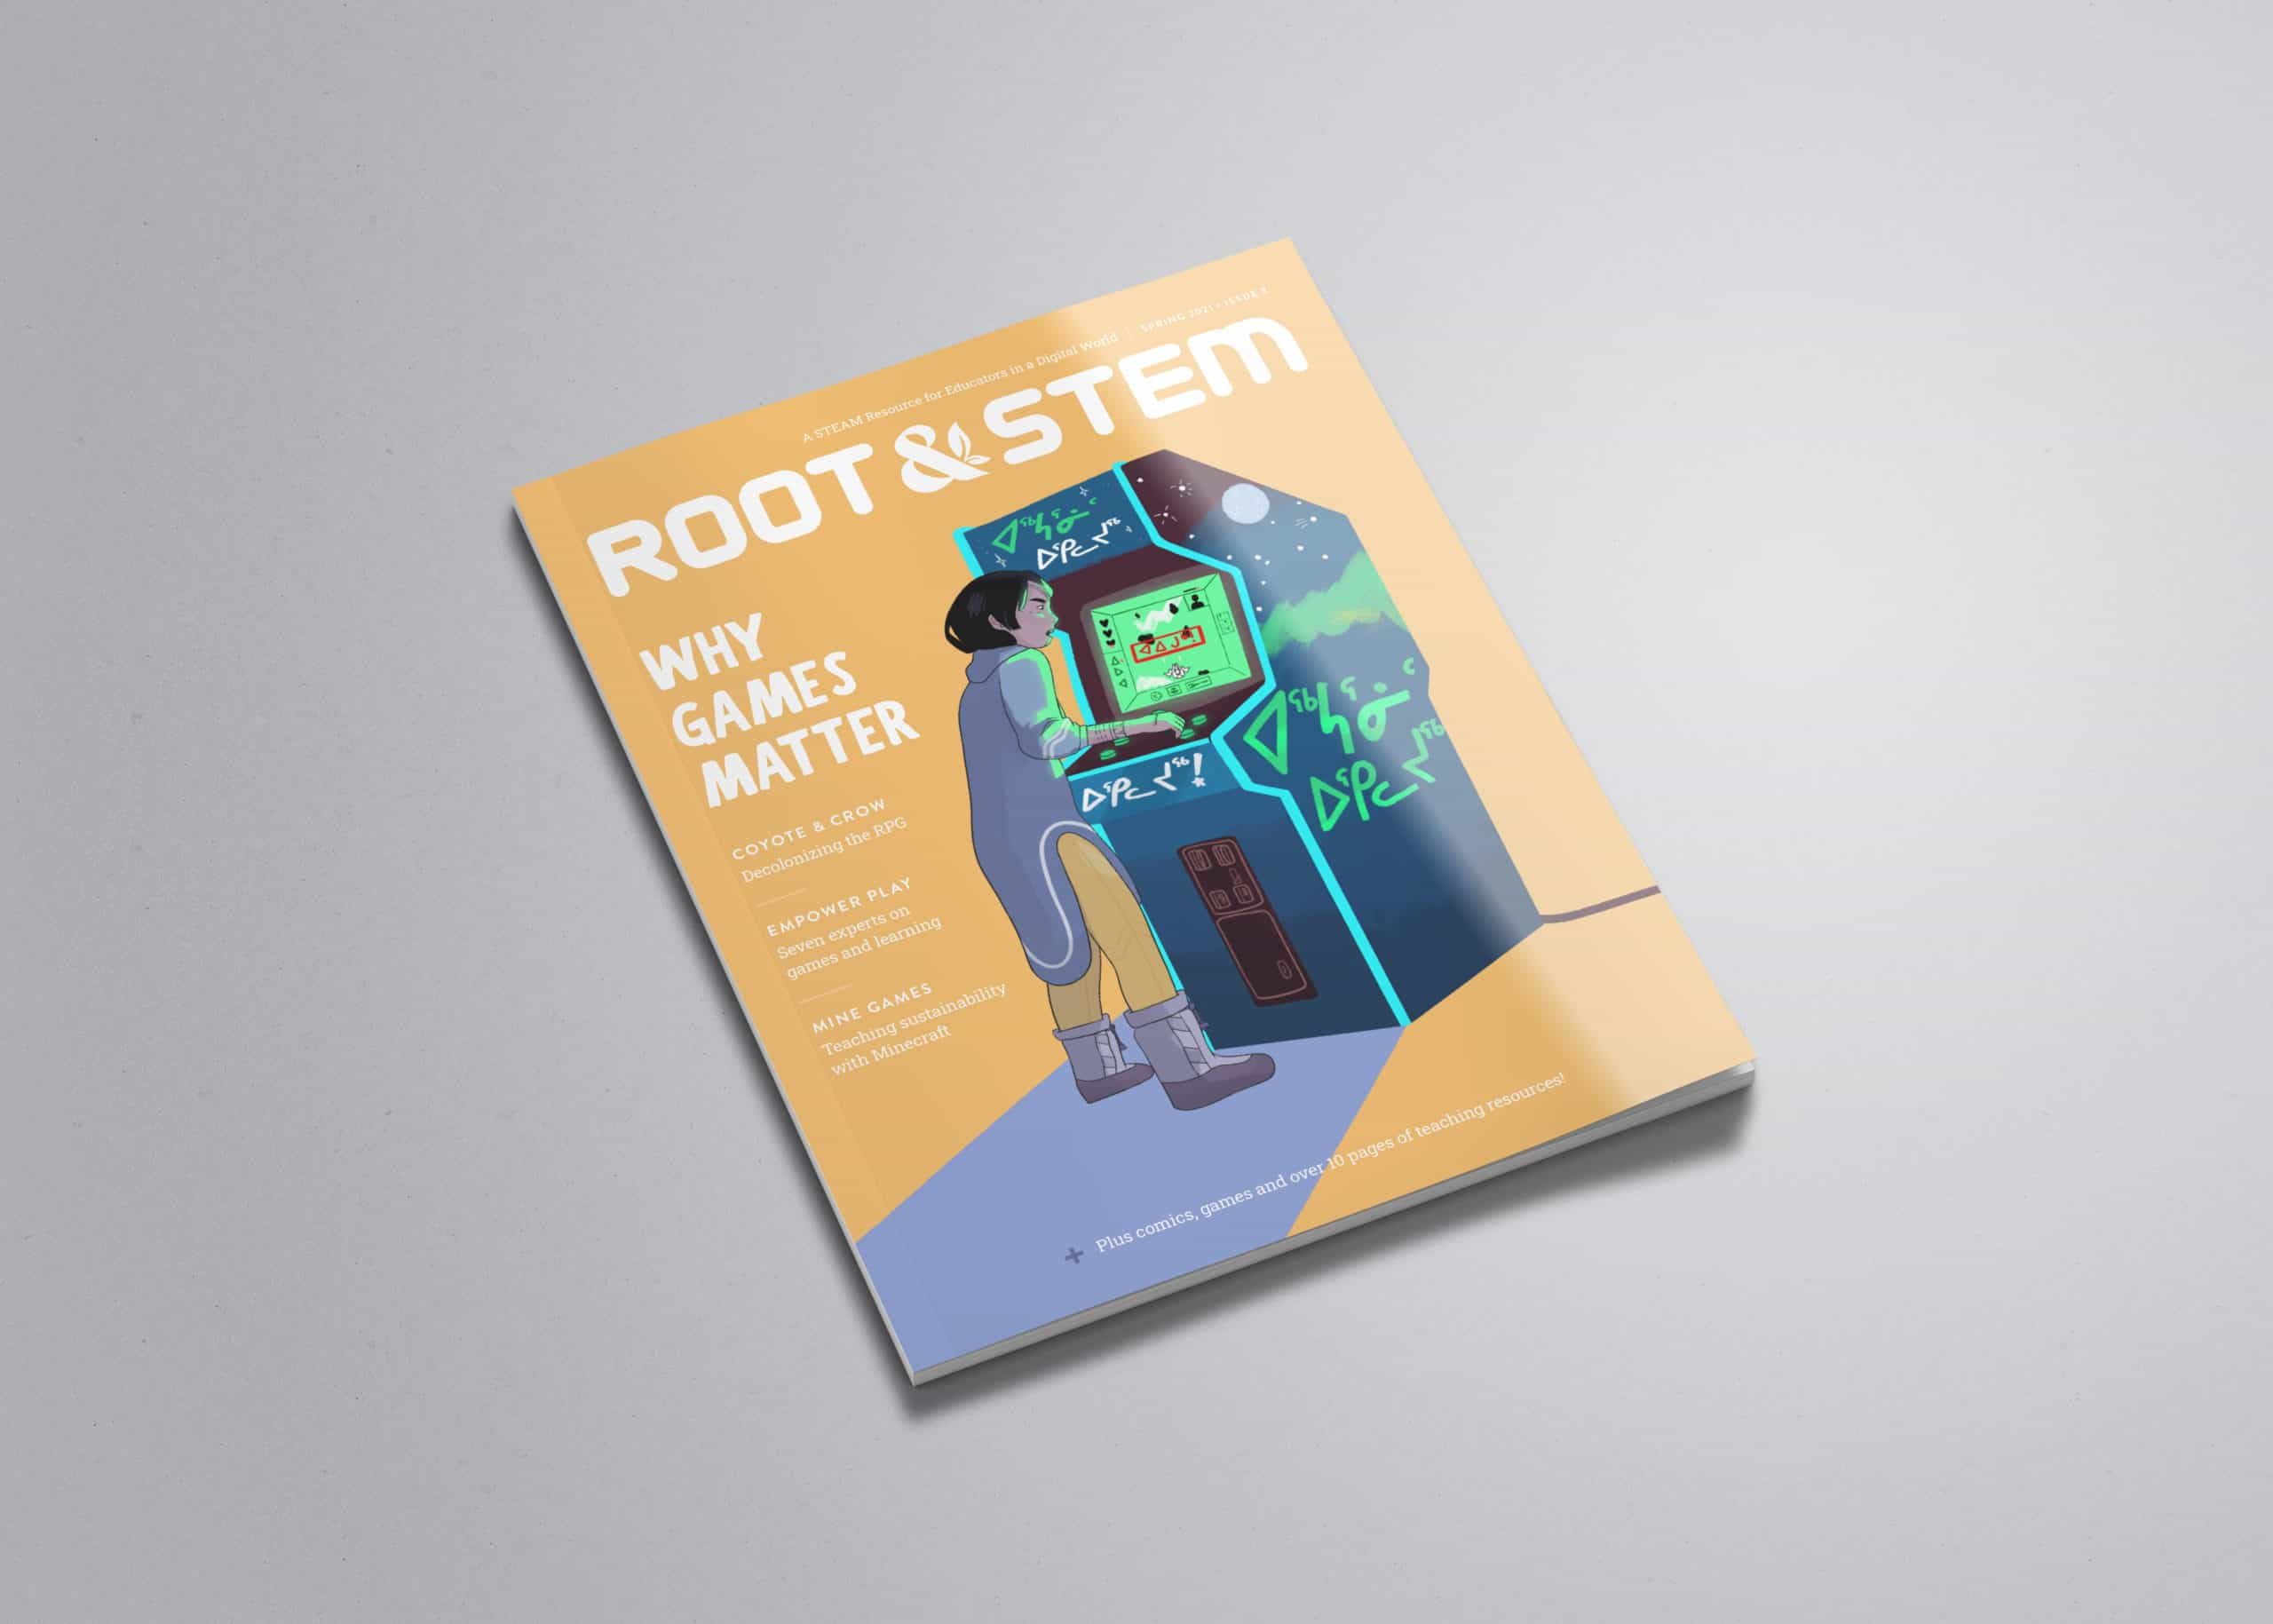 A print copy of the third issue of the Root & Stem magazine.